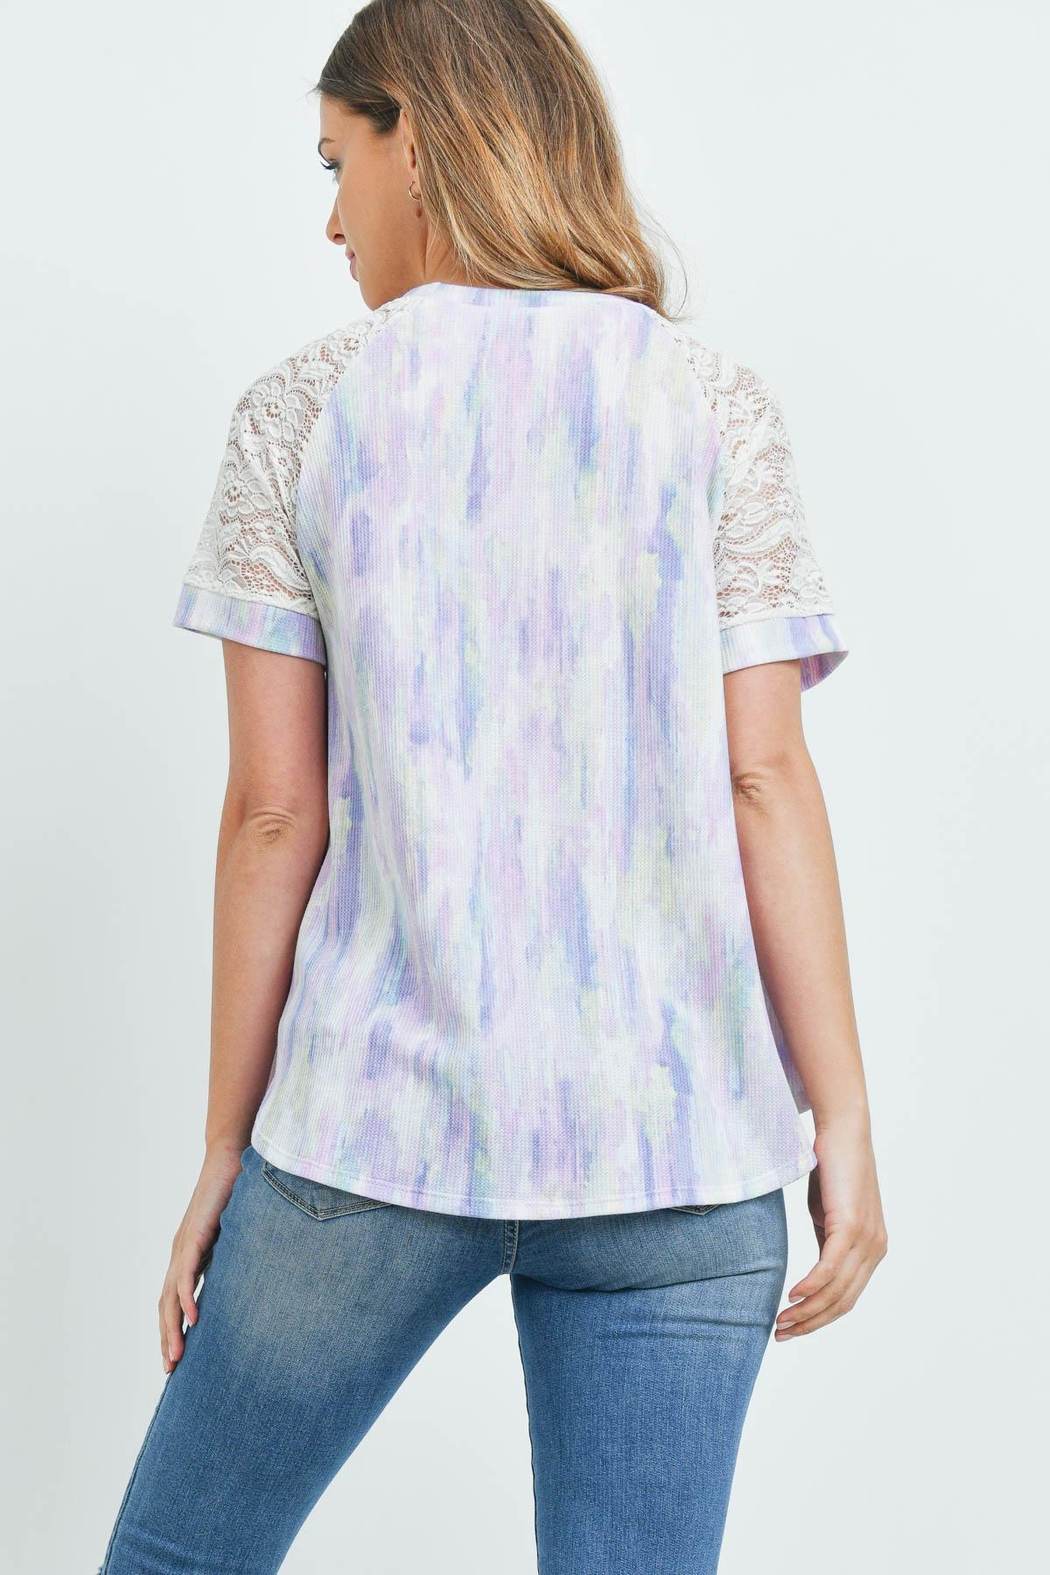 Riah Fashion Lace-Sleeve-Thermal-Tie-Dye-Top - Front Full Image